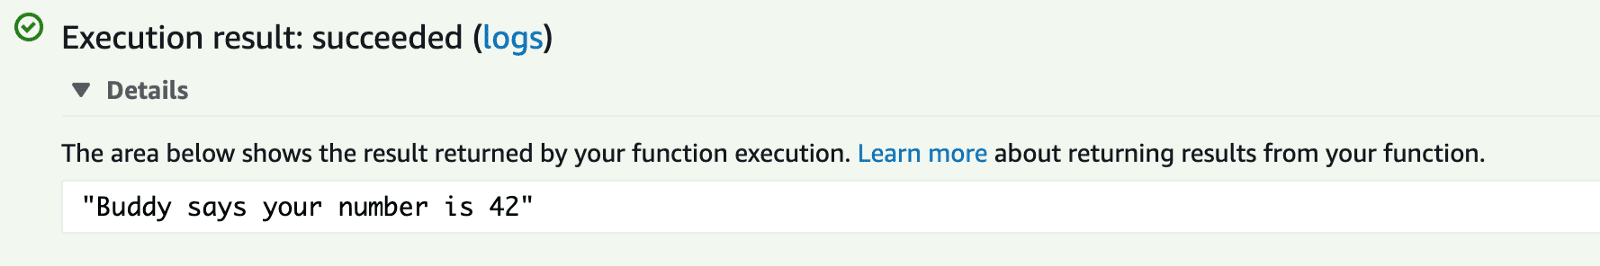 Execution succeeded